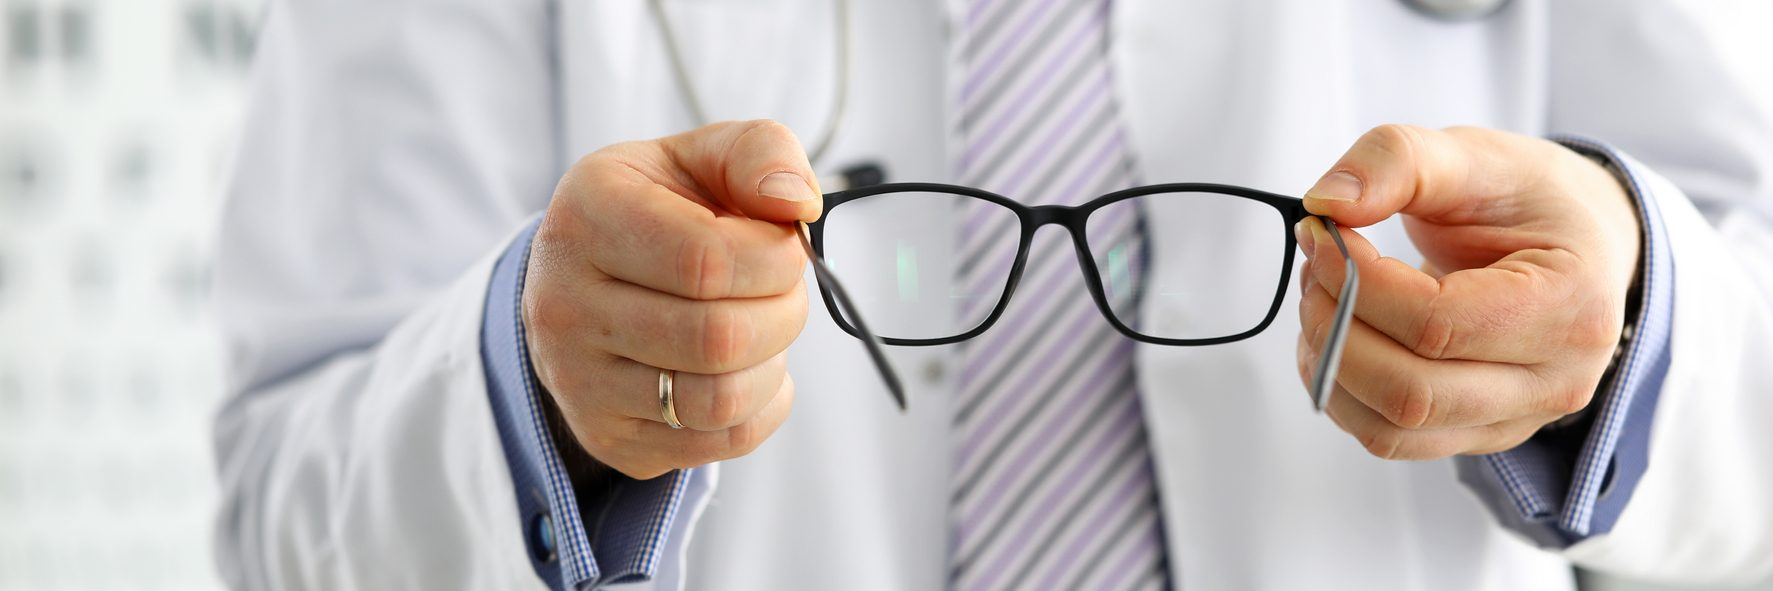 Optician offering glasses to a patient.